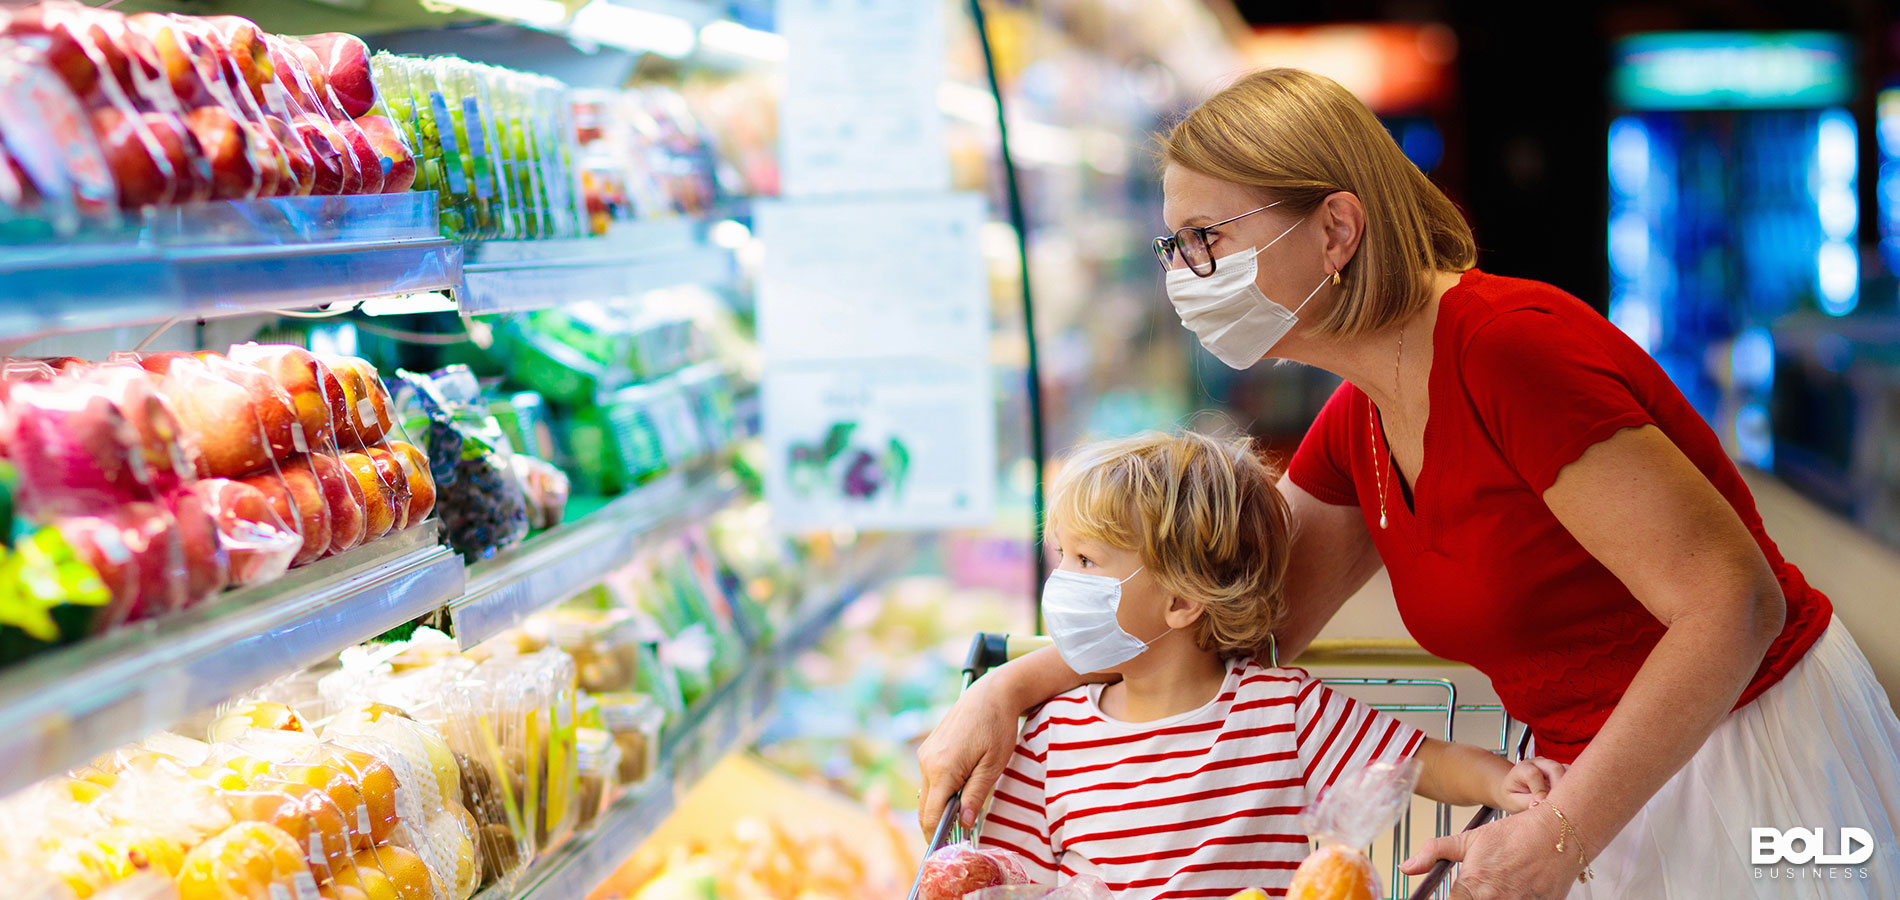 A mom and kid shopping for some delicious groceries